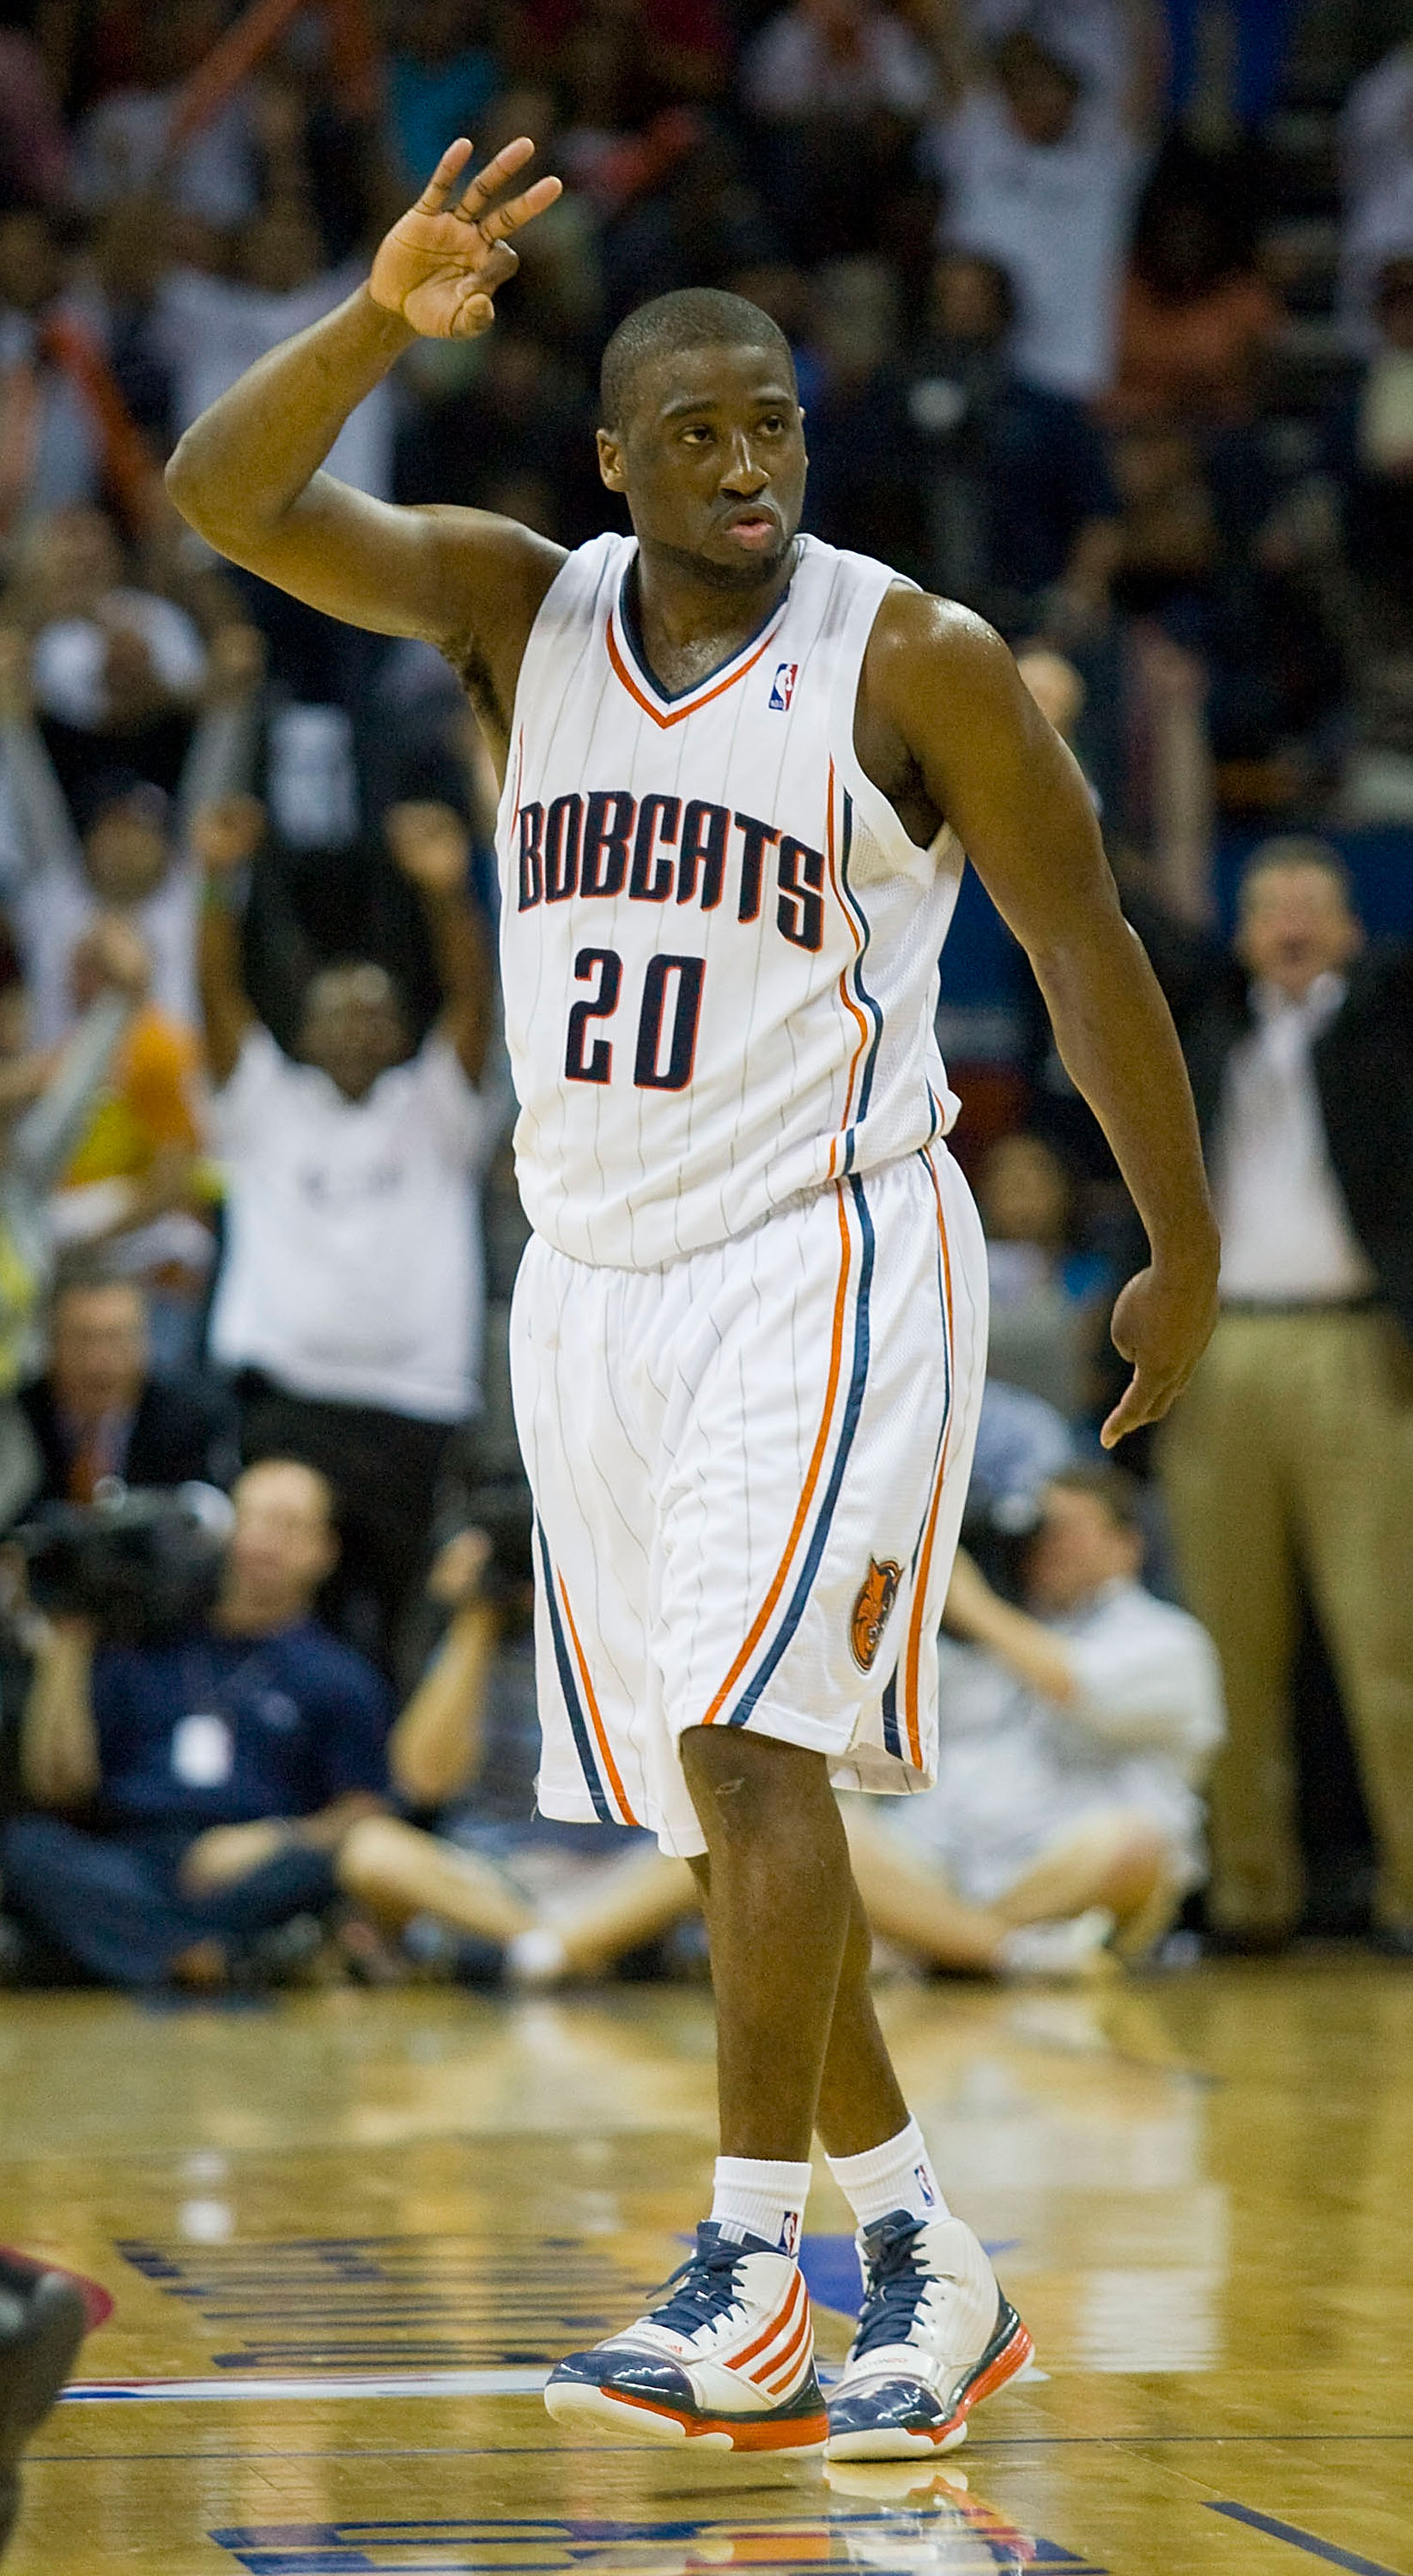 CHARLOTTE, NC - APRIL 26:  Raymond Felton #20 of the Charlotte Bobcats reacts after hitting a 3-point shot as time expired in the first quarter against the Orlando Magic in Game Four of the Eastern Conference Quarterfinals during the 2010 NBA Playoffs at